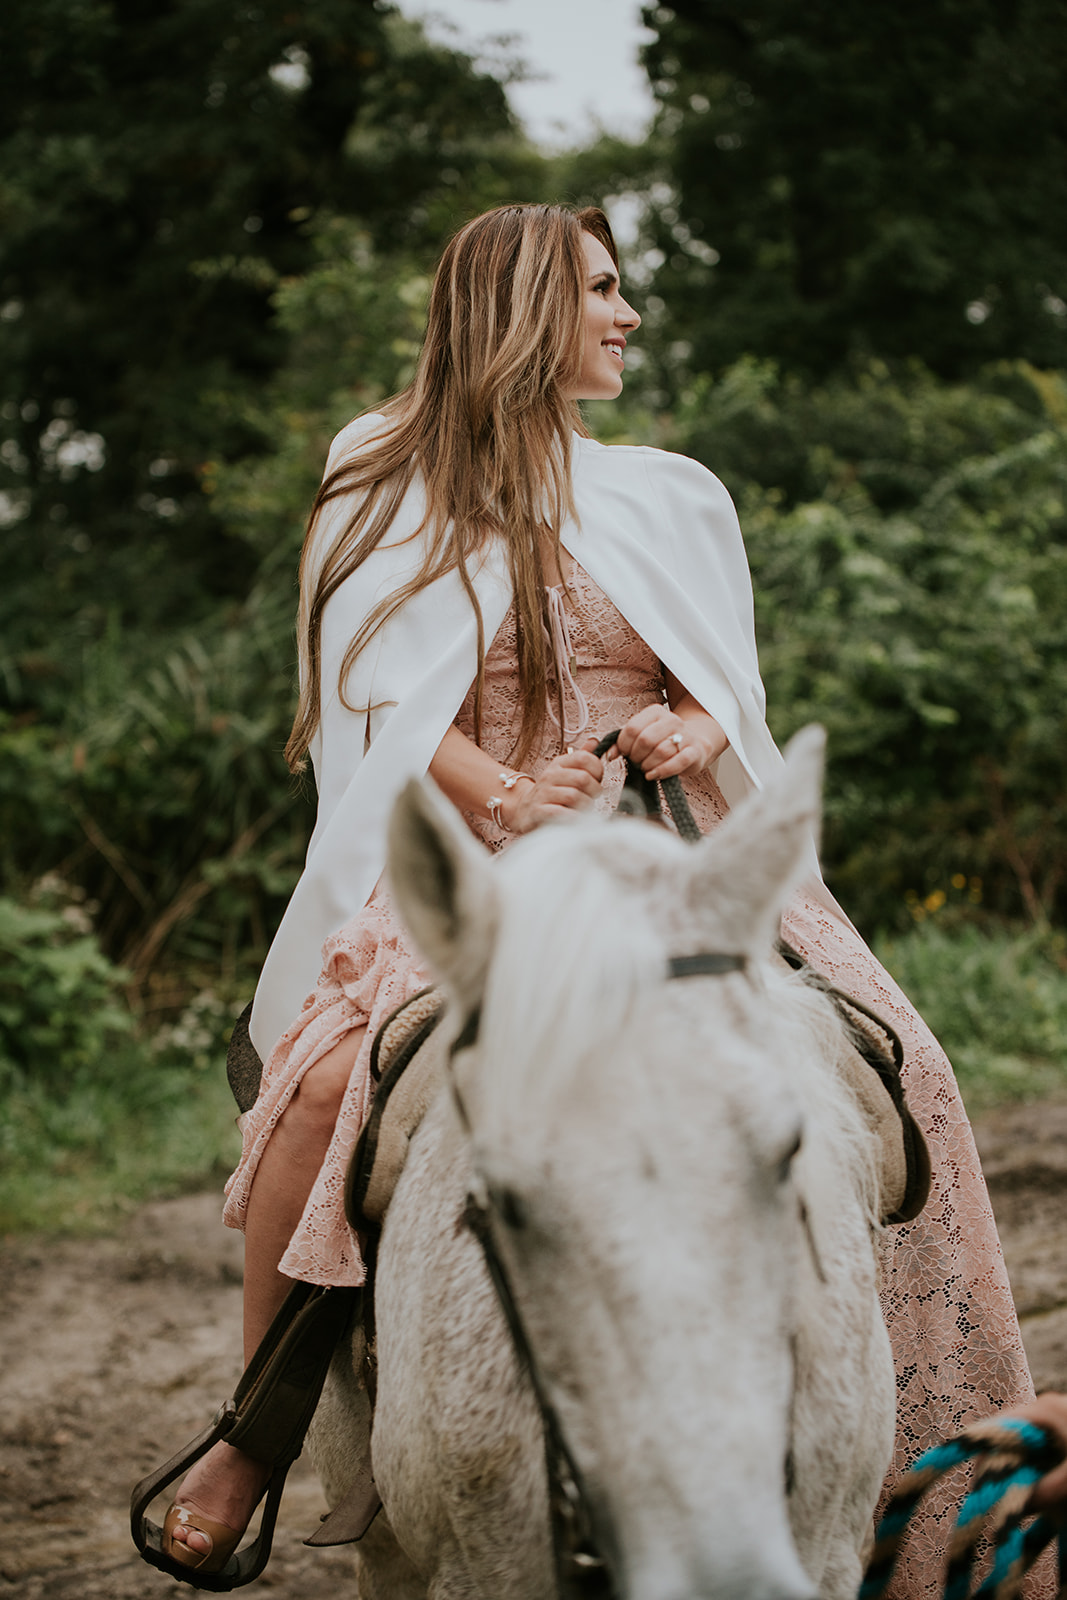 Le Cape Weddings - Boho Styled Shoot - Bride on Horse -1.jpg